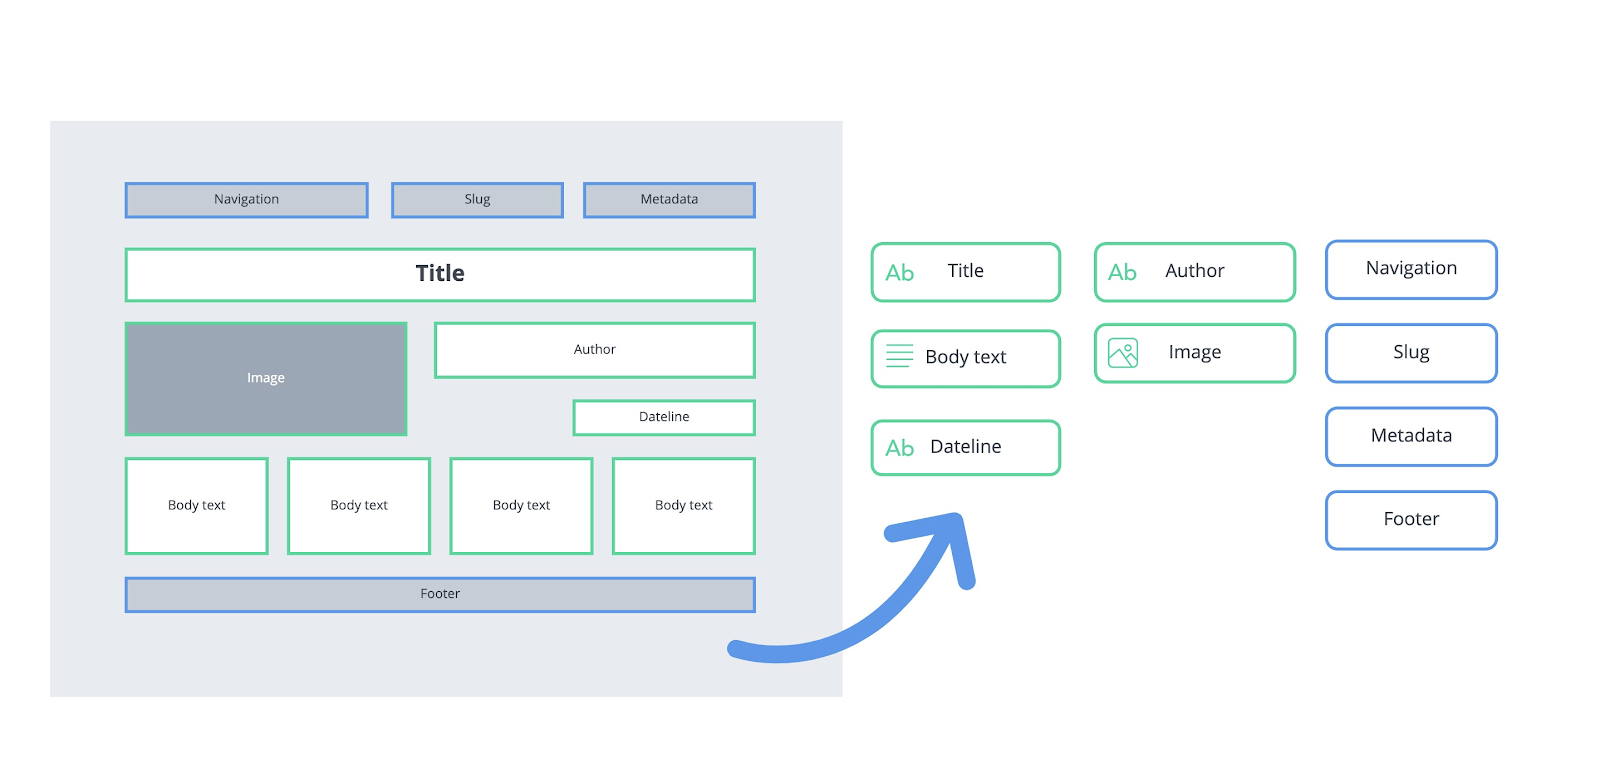 An image containing a breakdown of content types that make up a page: title, body text, dateline, author, image, navigation, slug, metadata, footer.